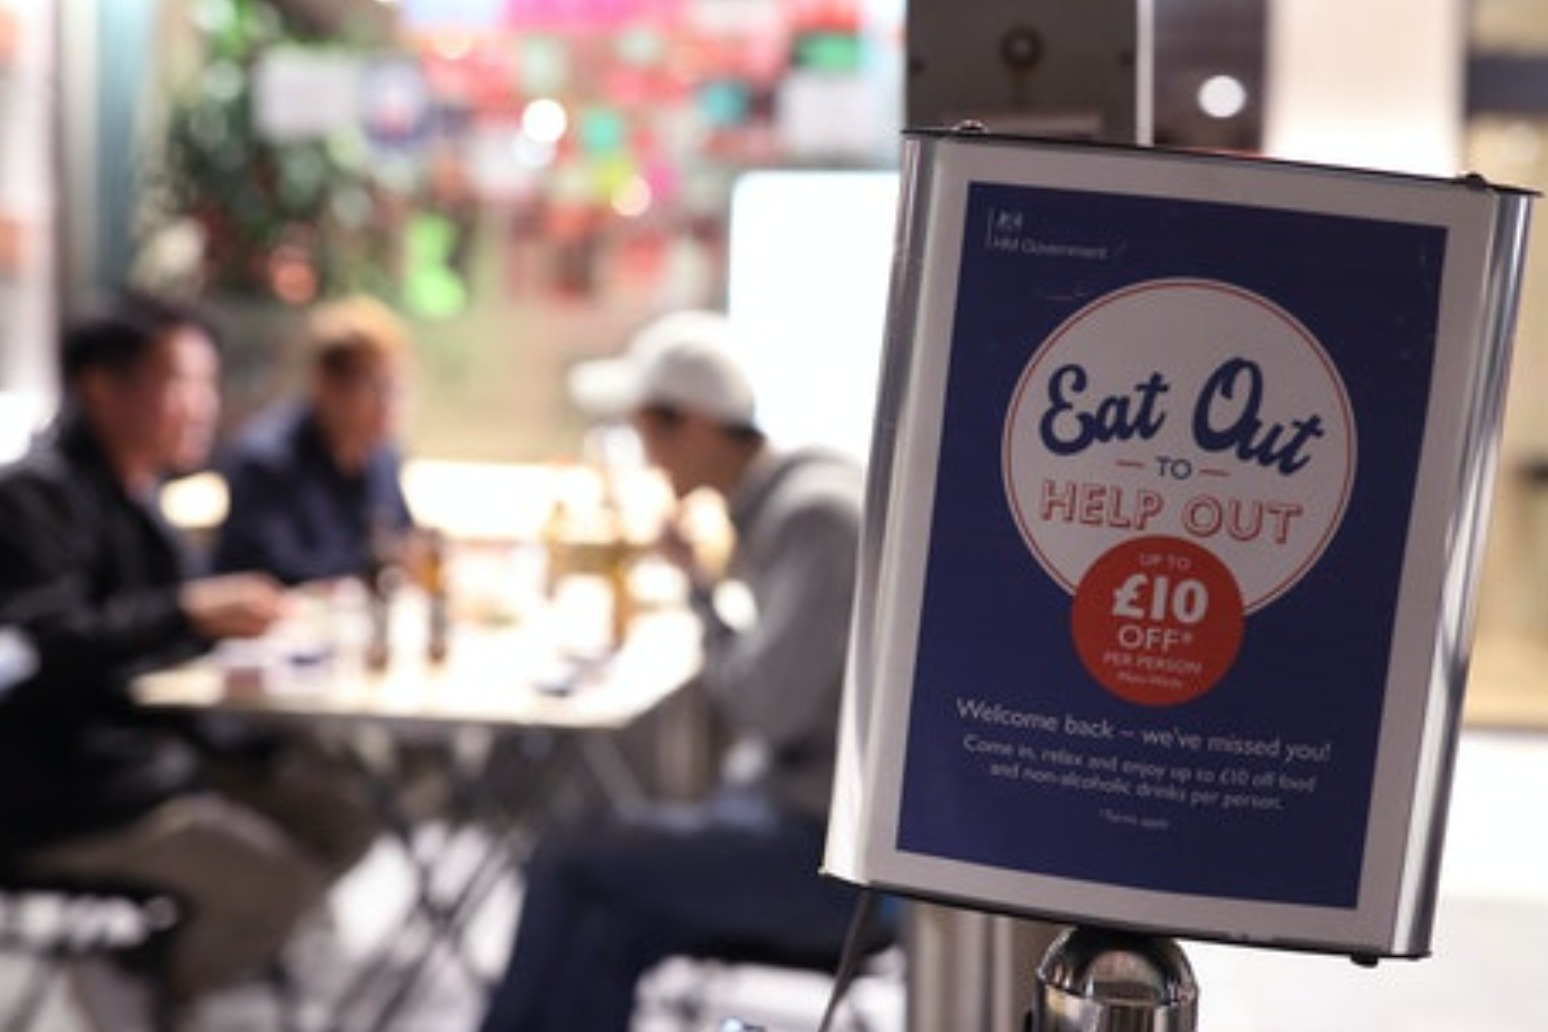 End of Eat Out to Help Out scheme pushes UK inflation higher